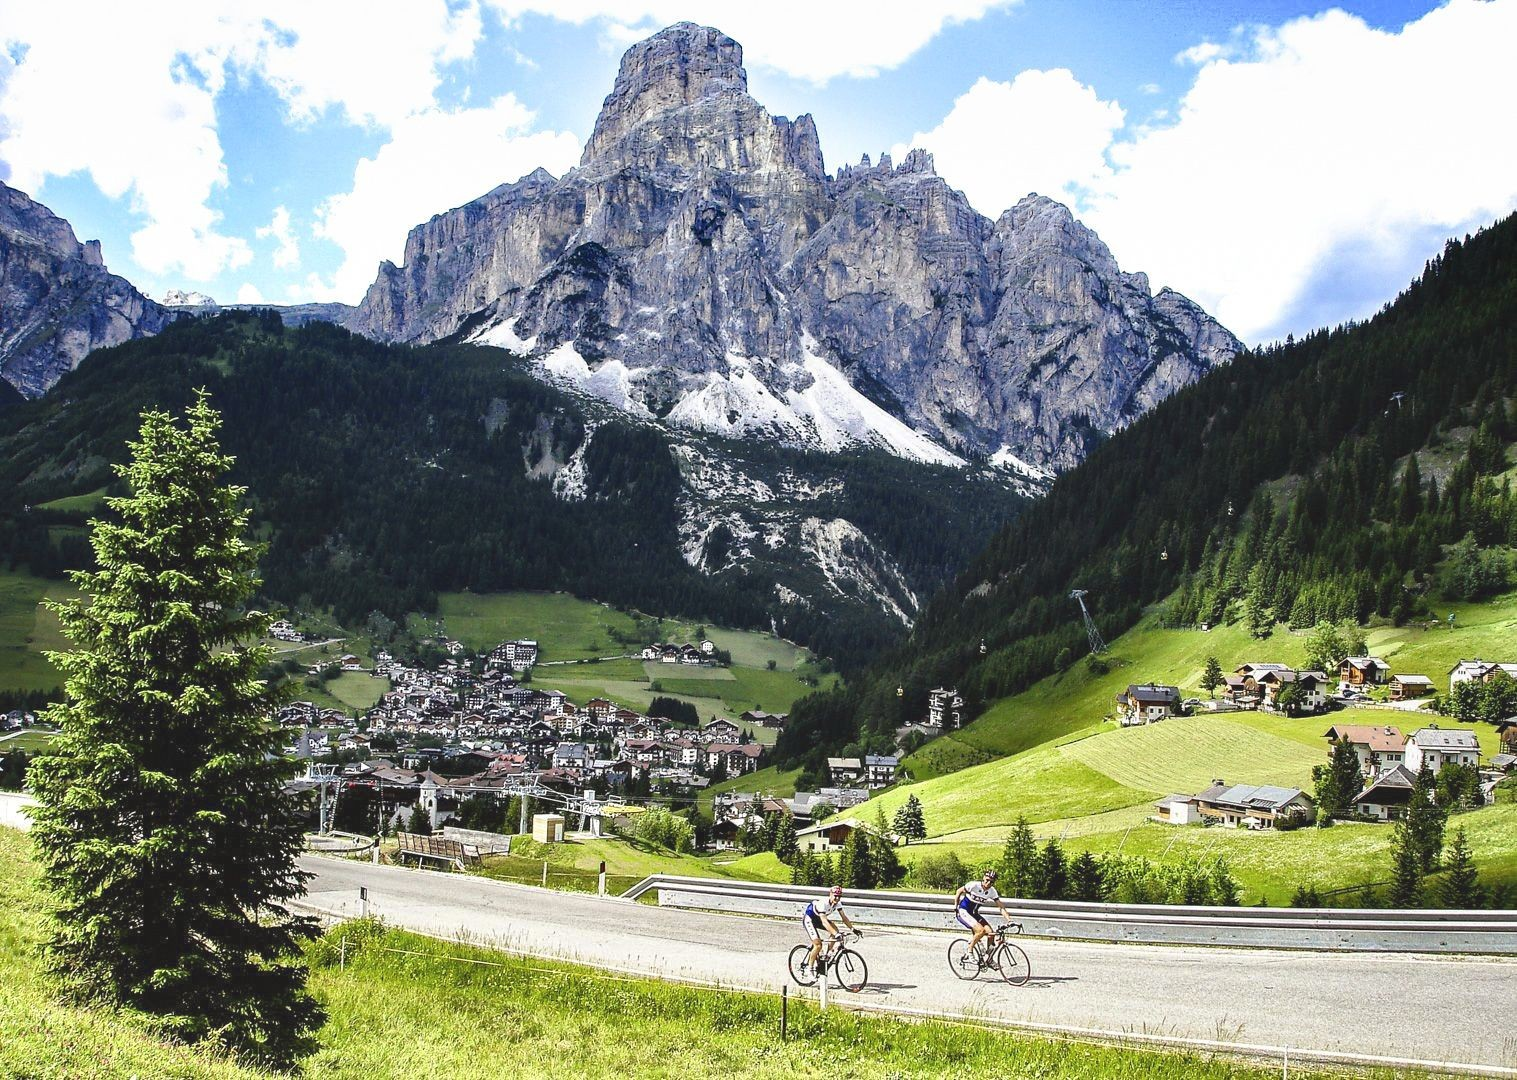 mountain-dolomites-of-italy-by-road-bike.jpg - Italy - Italian Dolomites - Guided Road Cycling Holiday - Road Cycling